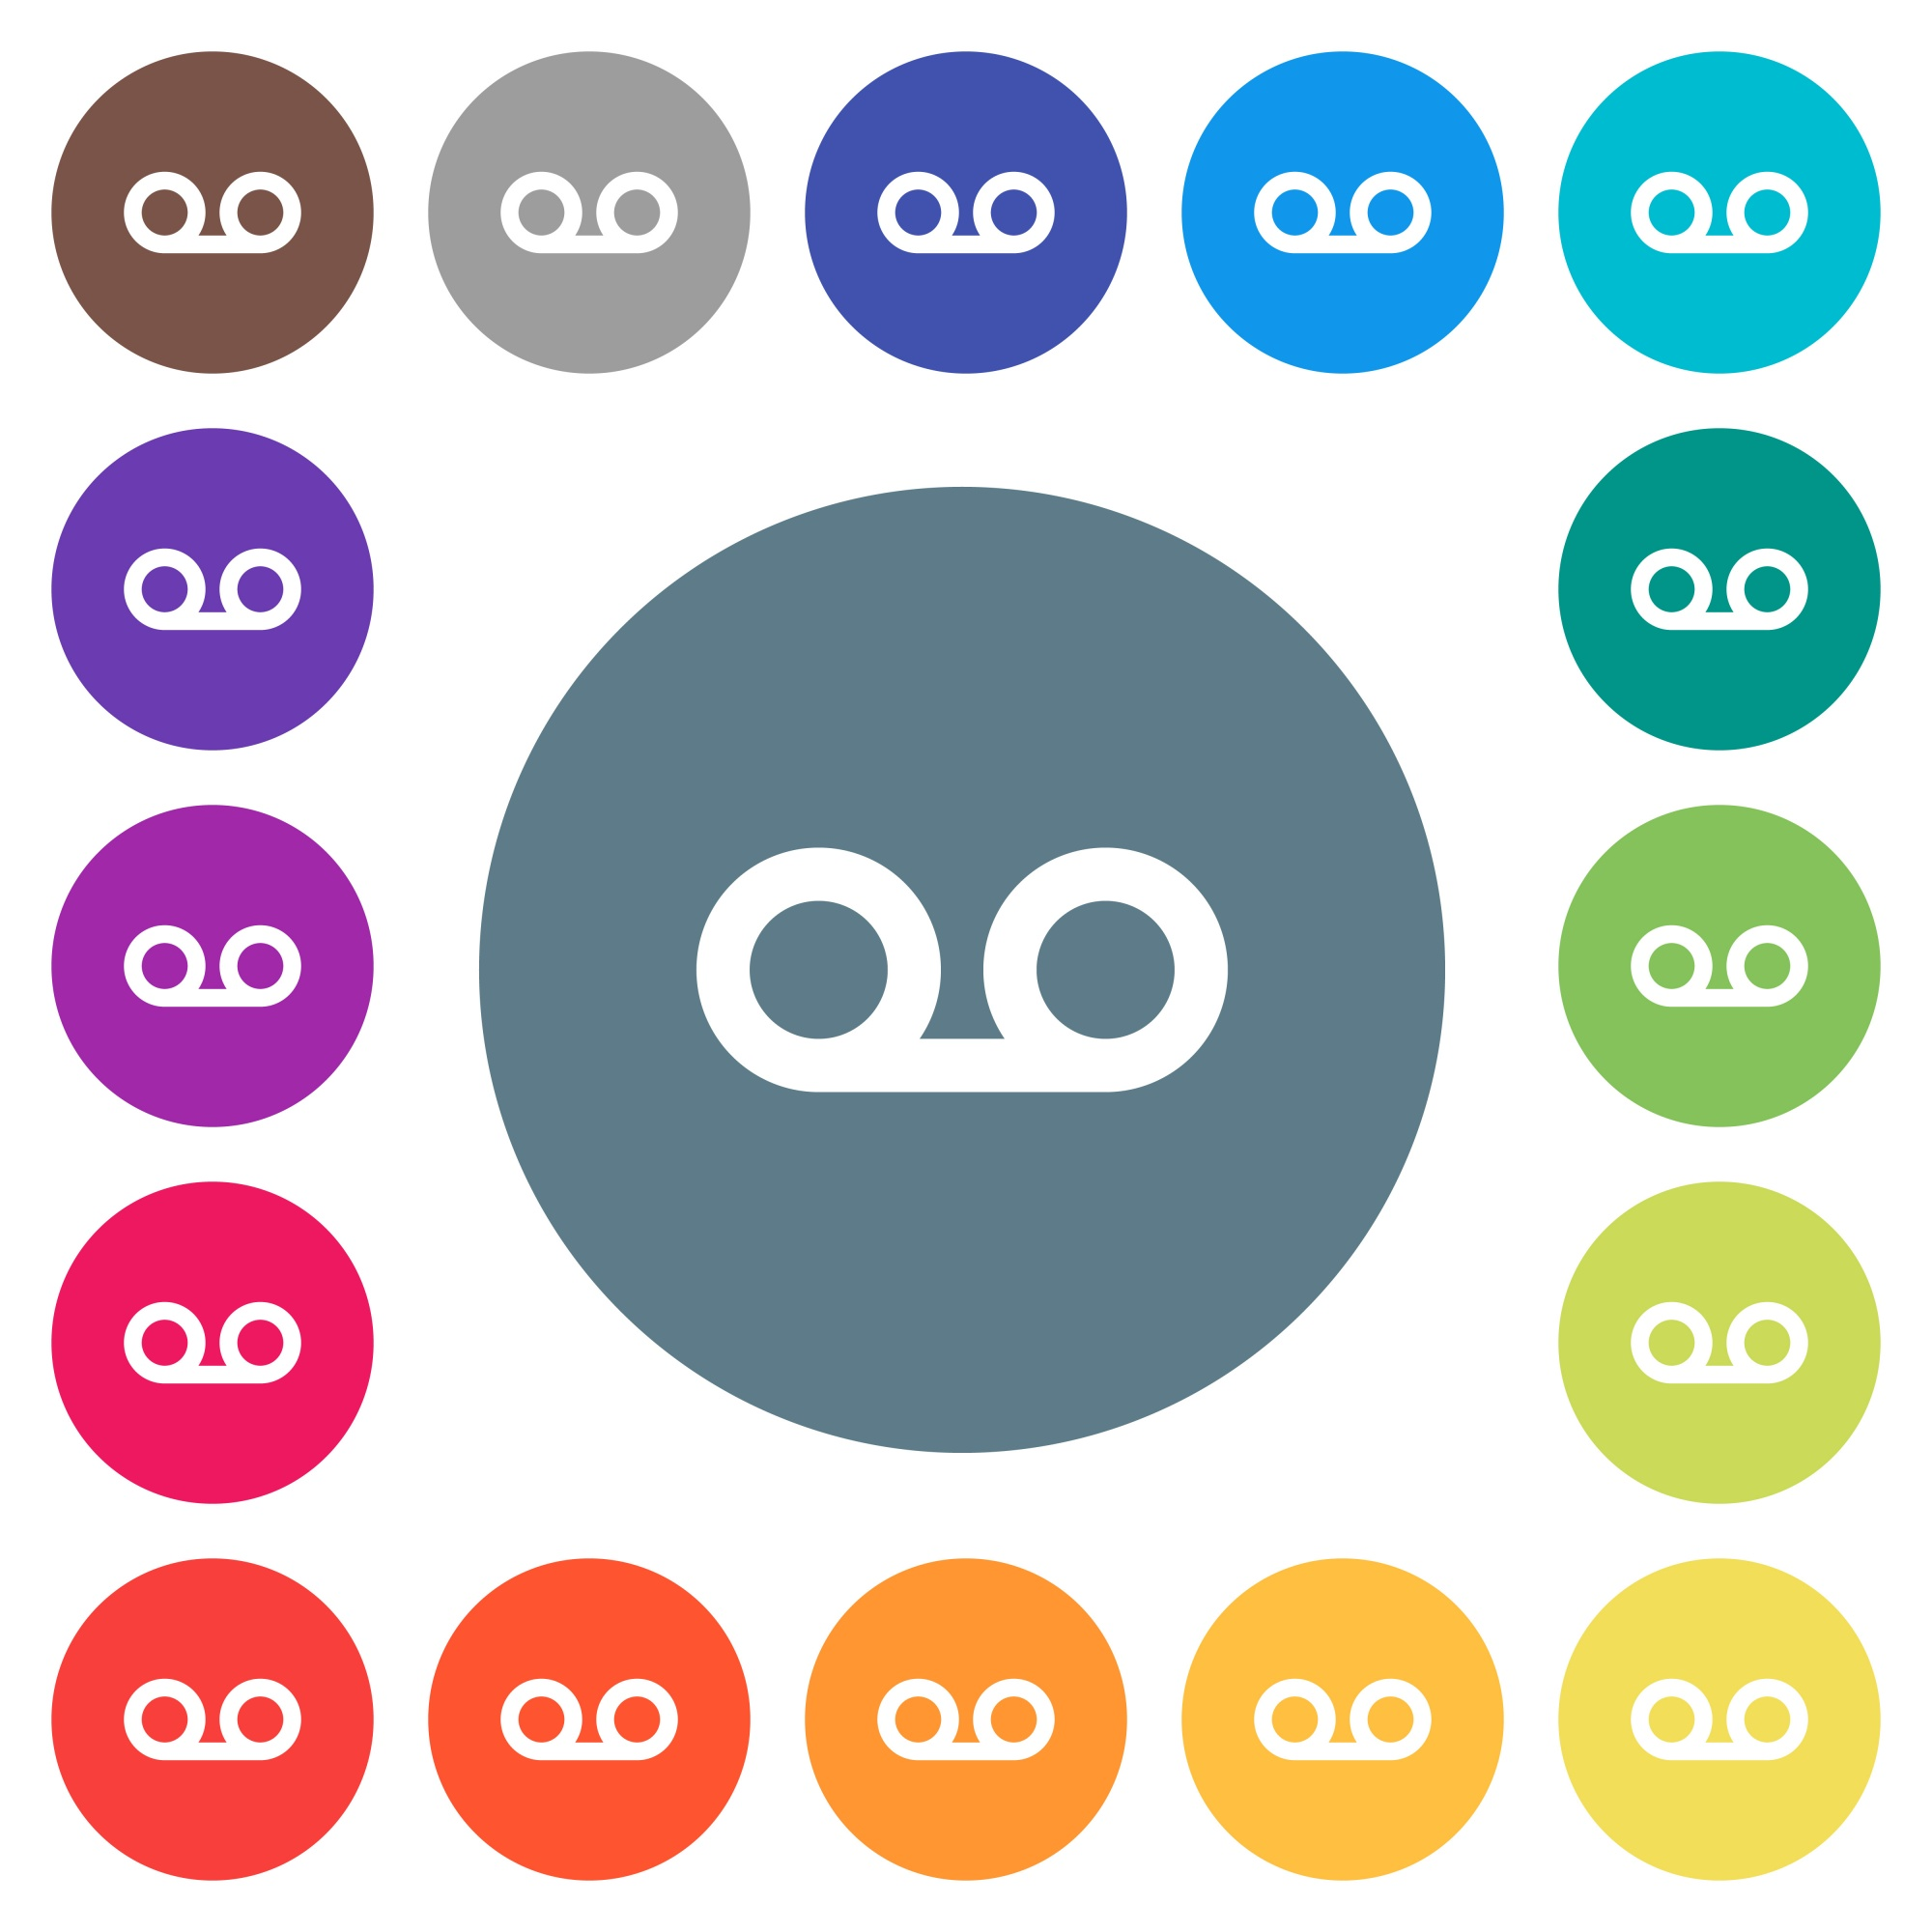 Voicemail flat white icons on round color backgrounds. 17 background color variations are included. - Free image